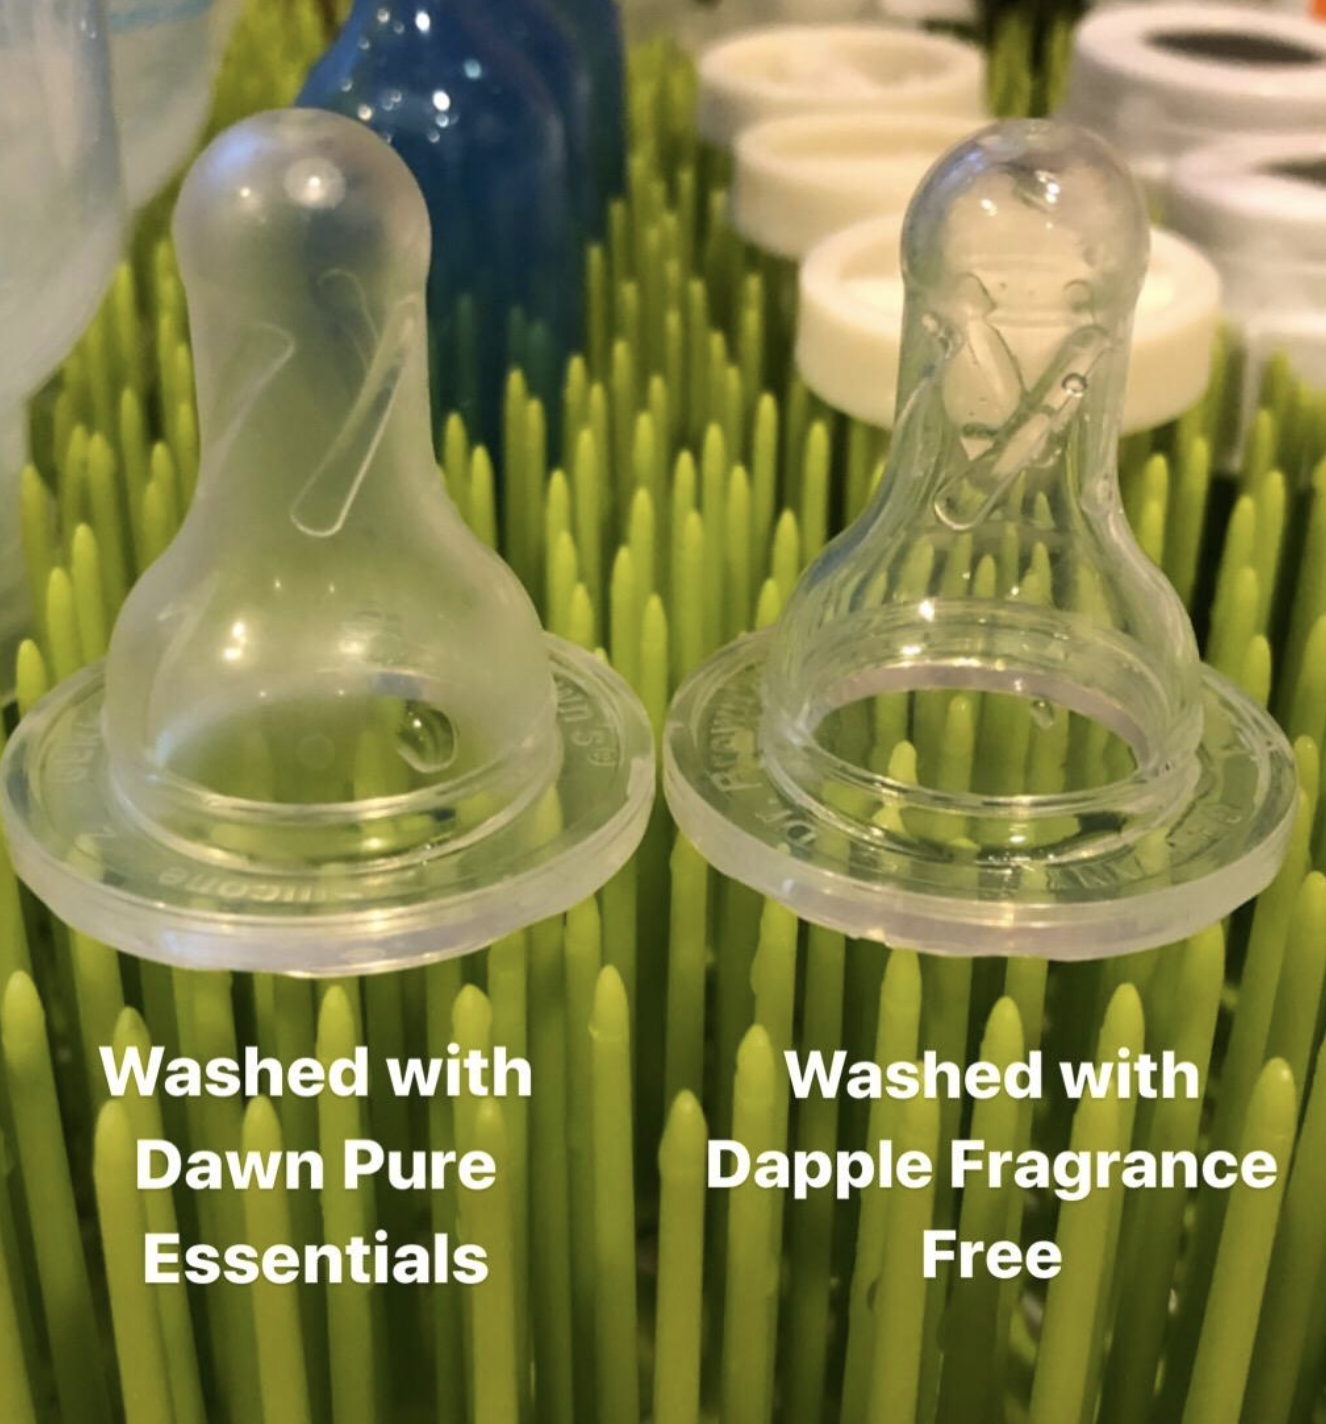 Reviewer photo showing bottle tip cleaned with Dawn and Dapple soap. When Dawn was used, there was significantly more residue left behind.